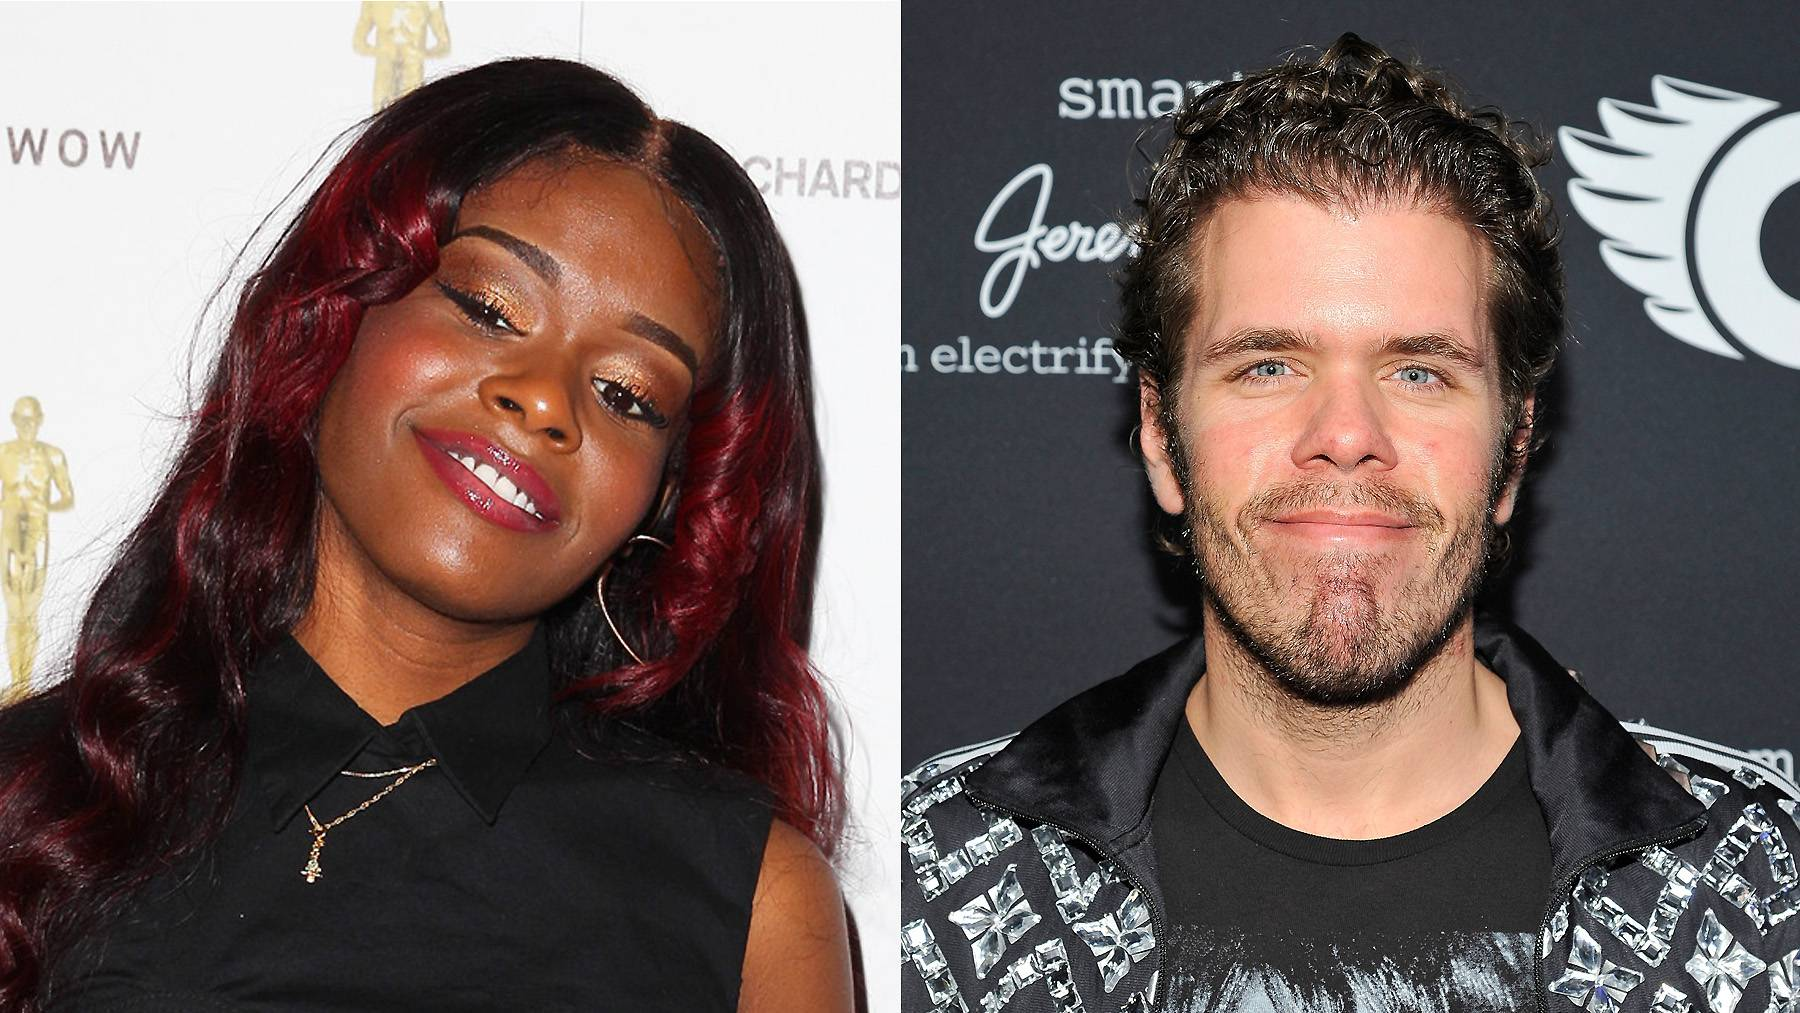 """Perez Hilton - Azealia Banksbutted heads with celebrity blogger Perez Hilton after he publicly expressed his support for Banks's newfound foe Angel Haze.Azealia struck back on Twitter, calling Hilton a """"messy f****t."""" She was criticized for using the slur, and offered this explanation: """"A f****t is not a homosexual male. A f****t is any male who acts like a female. There's a BIG difference,"""" she wrote. """"As a bisexual person I knew what I meant when I used that word...My most sincere apologies to anyone who was indirectly offended by my foul language.""""(Photos from left: Joe Scarnici/Getty Images for GQ, John Sciulli/Getty Images for smart)"""